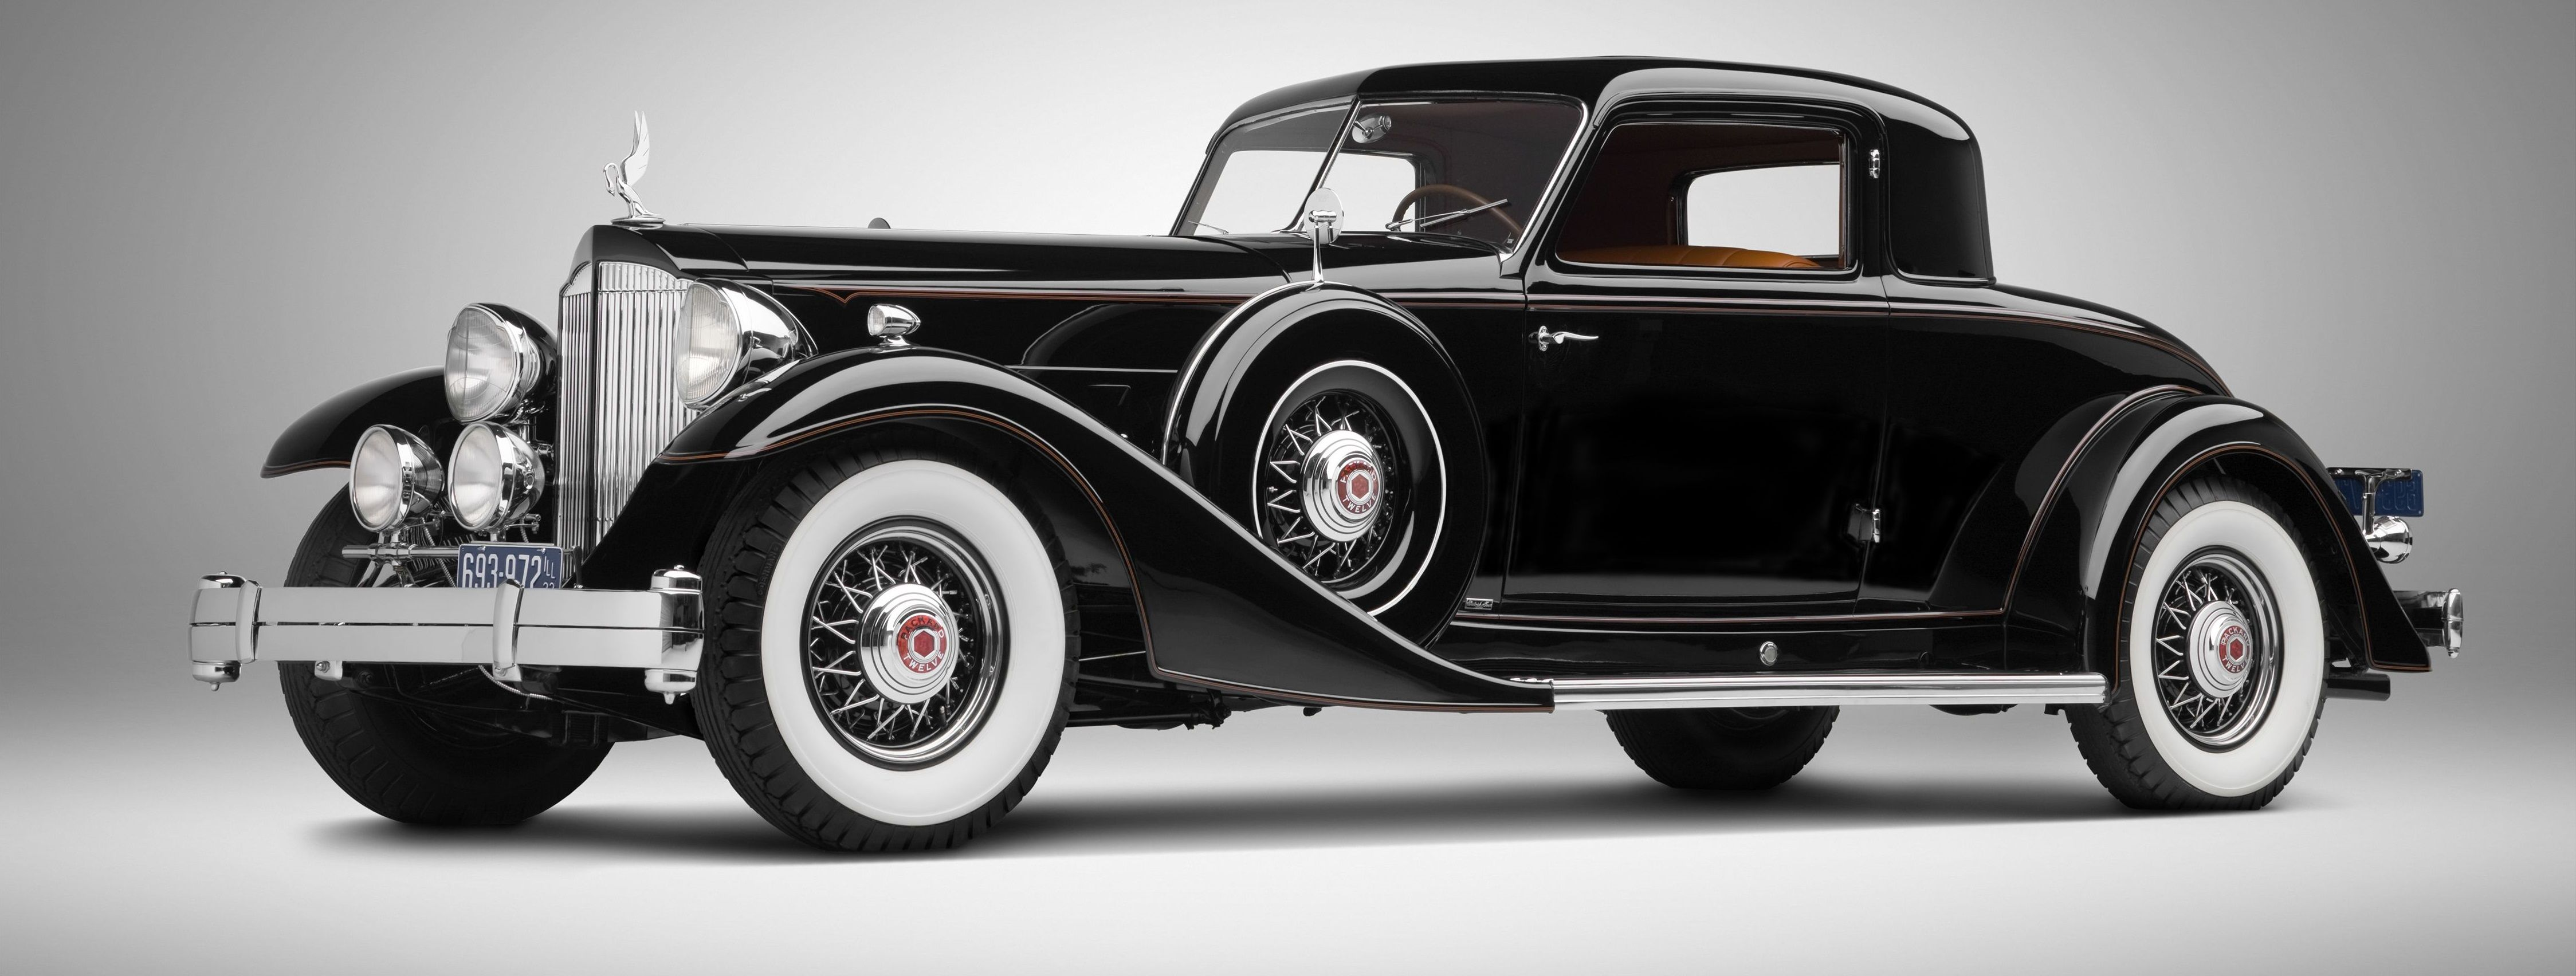 1933 Packard Twelve Stationary Coupe 1930 S Cars 1930s Most Beautiful